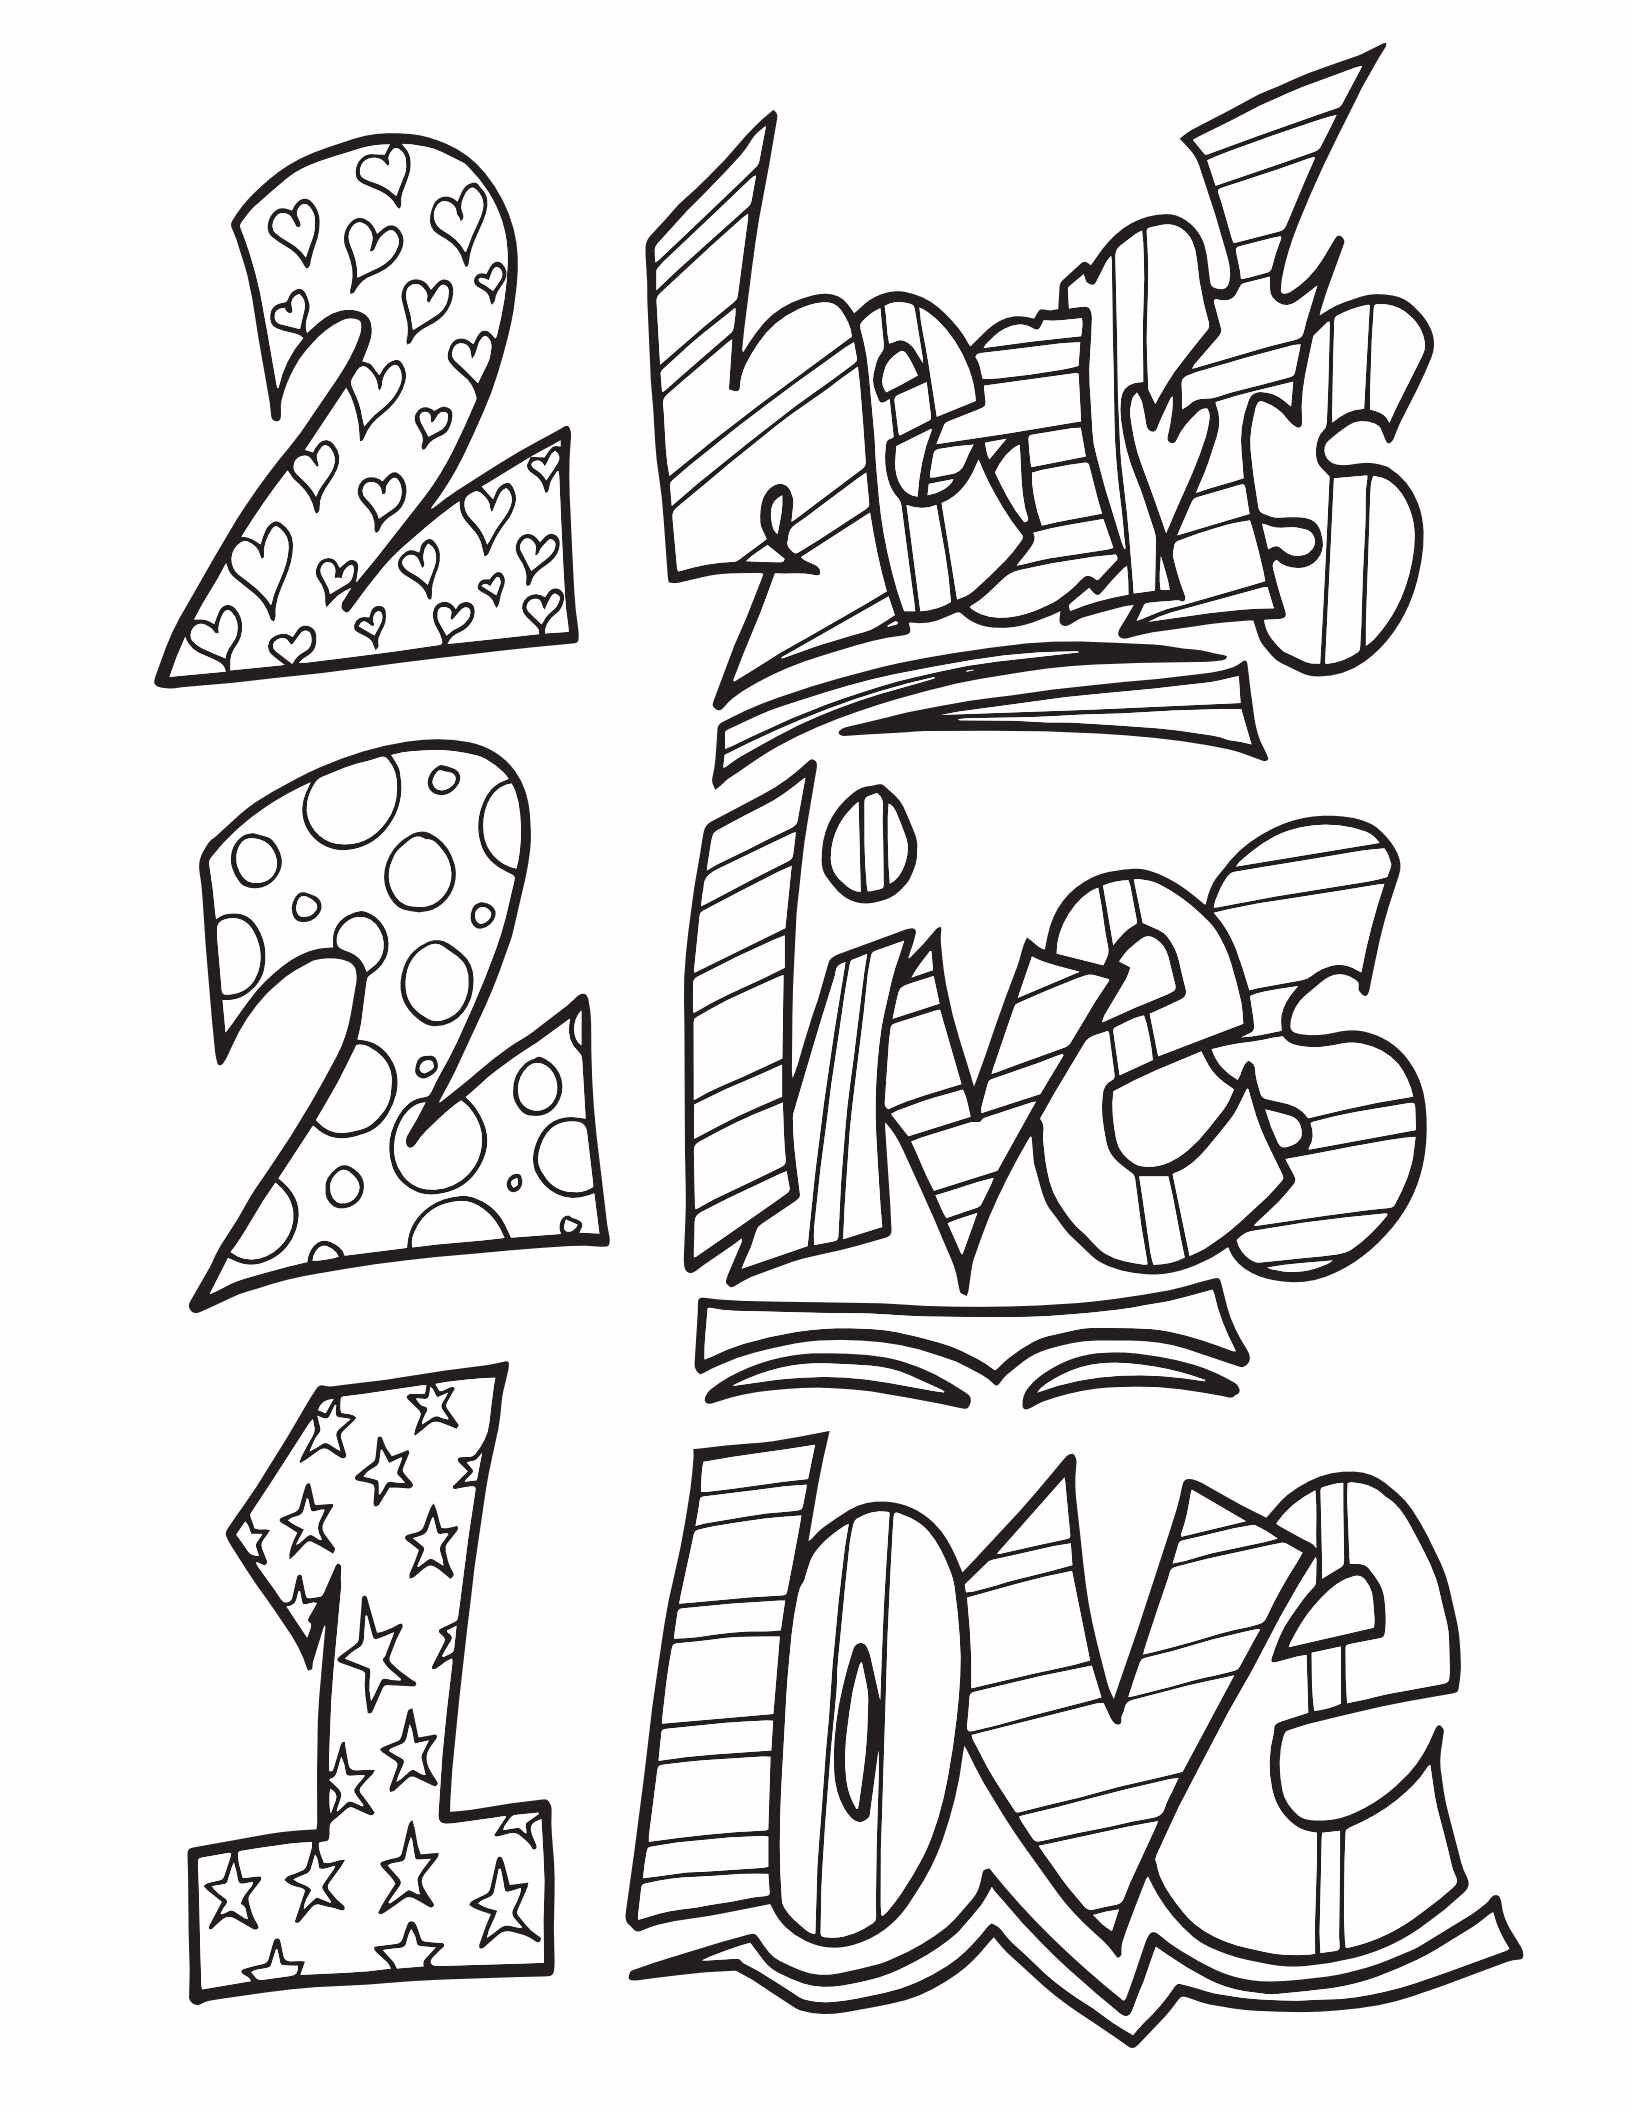 2 HEARTS 2 LIVES 1 LOVE - Free Printable Coloring Page Search over 1000  free coloring page… in 2020 | Free printable coloring pages, Coloring pages,  Coloring pages to print